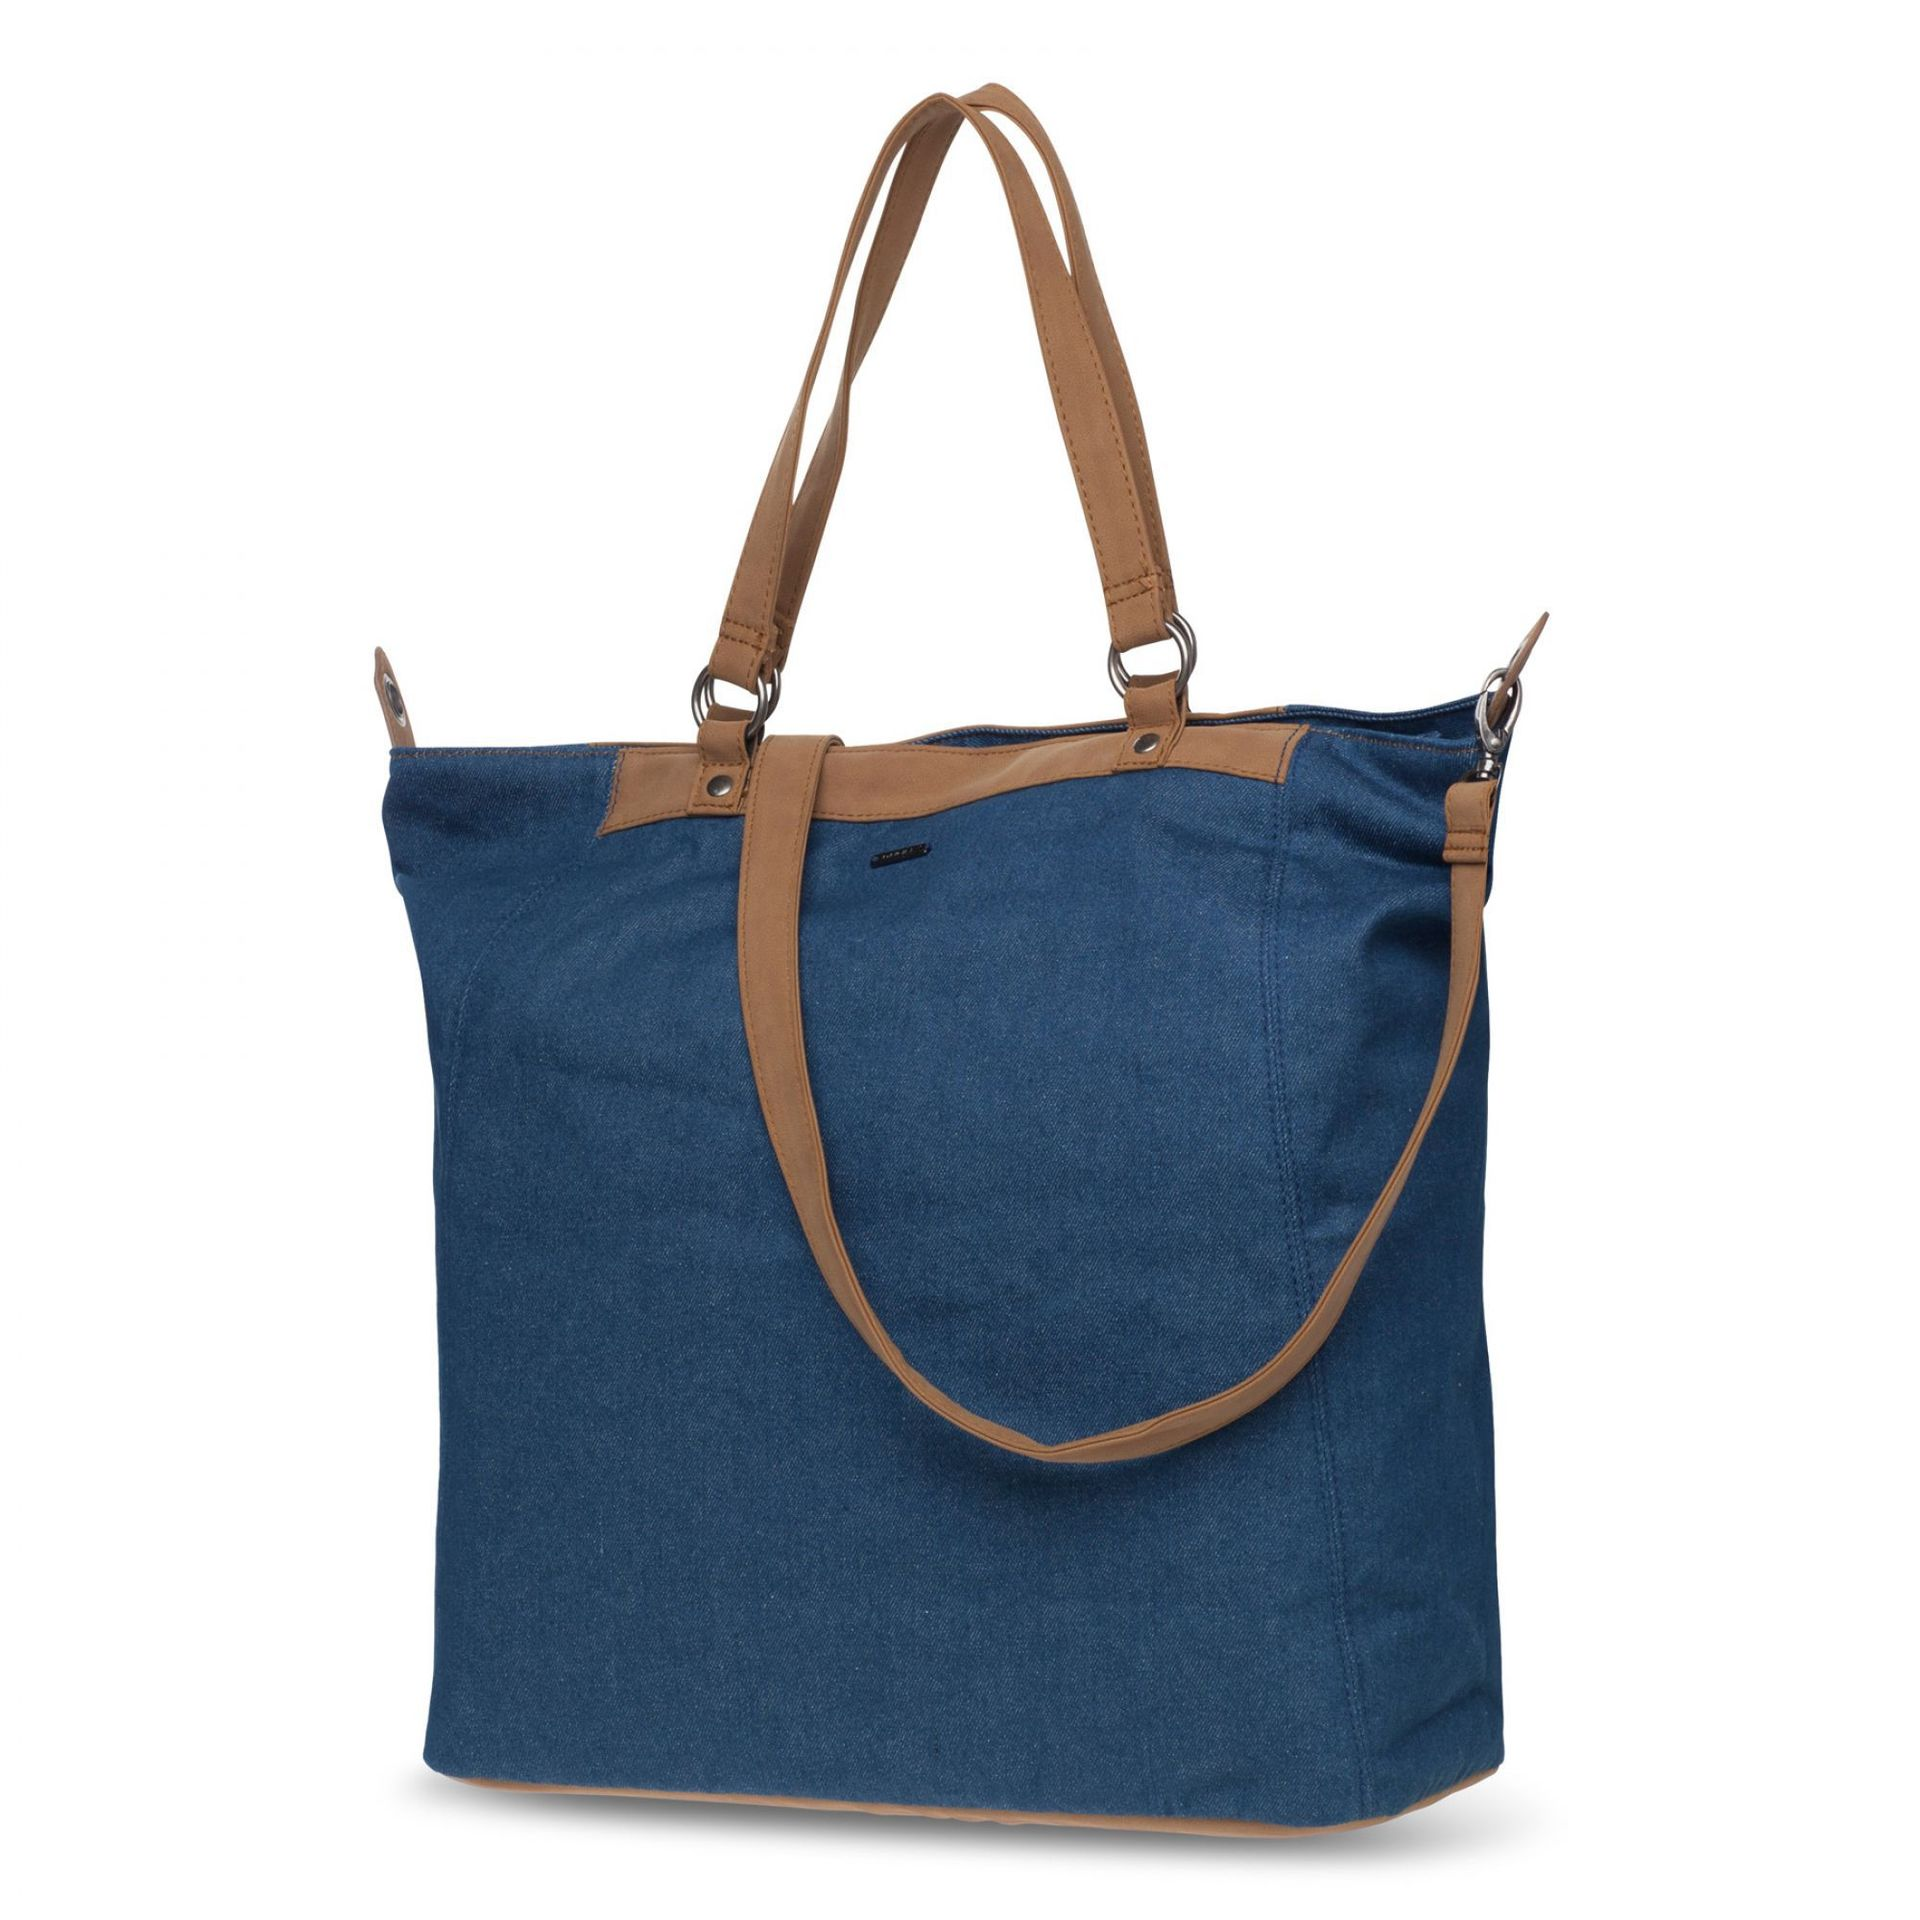 TOREBKA ONEILL DOROTHY SHOPPER CARBON BLUE